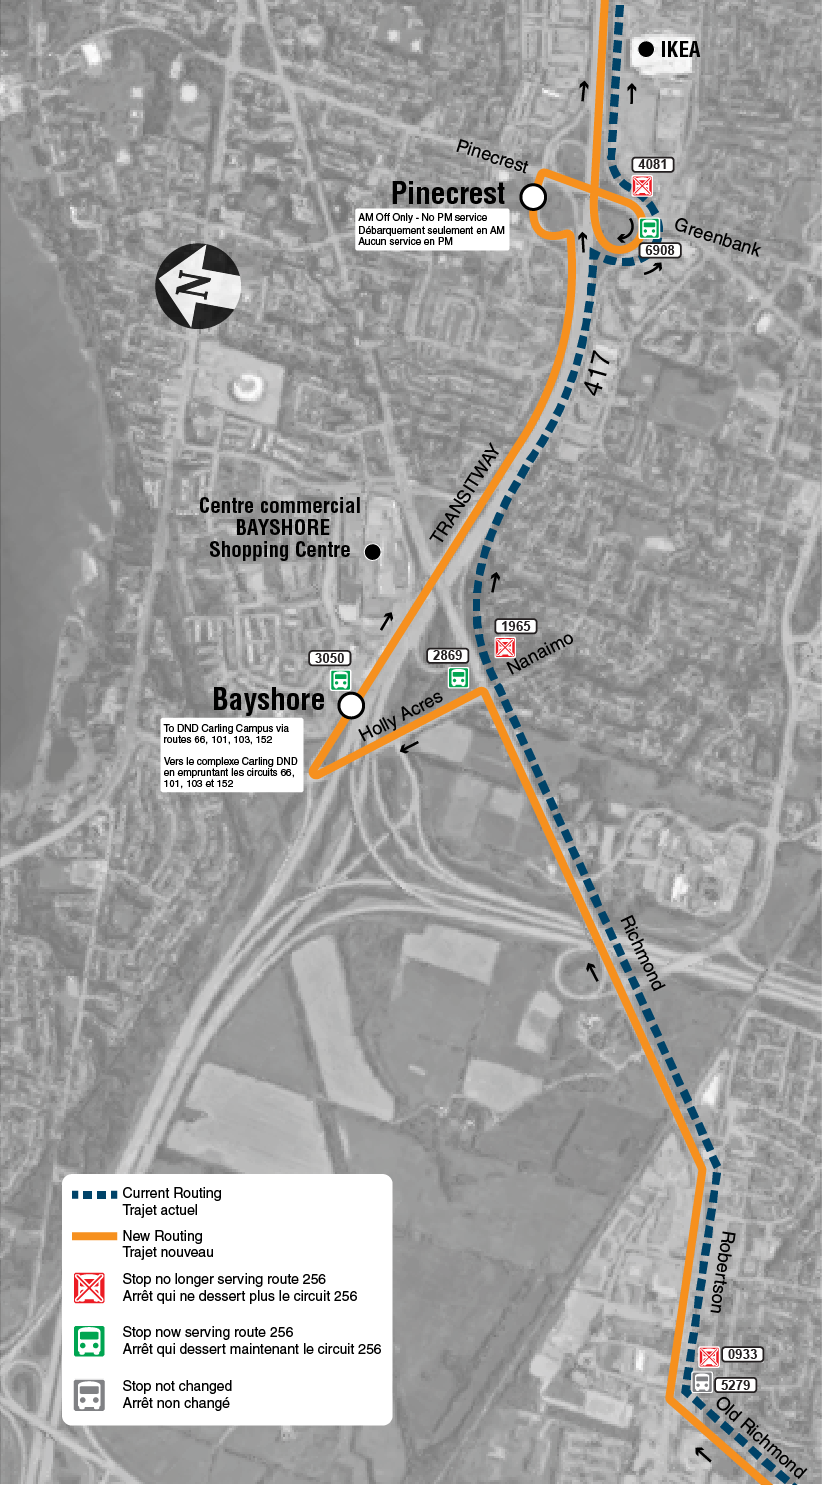 Route change map for route 256 Mackenzie King